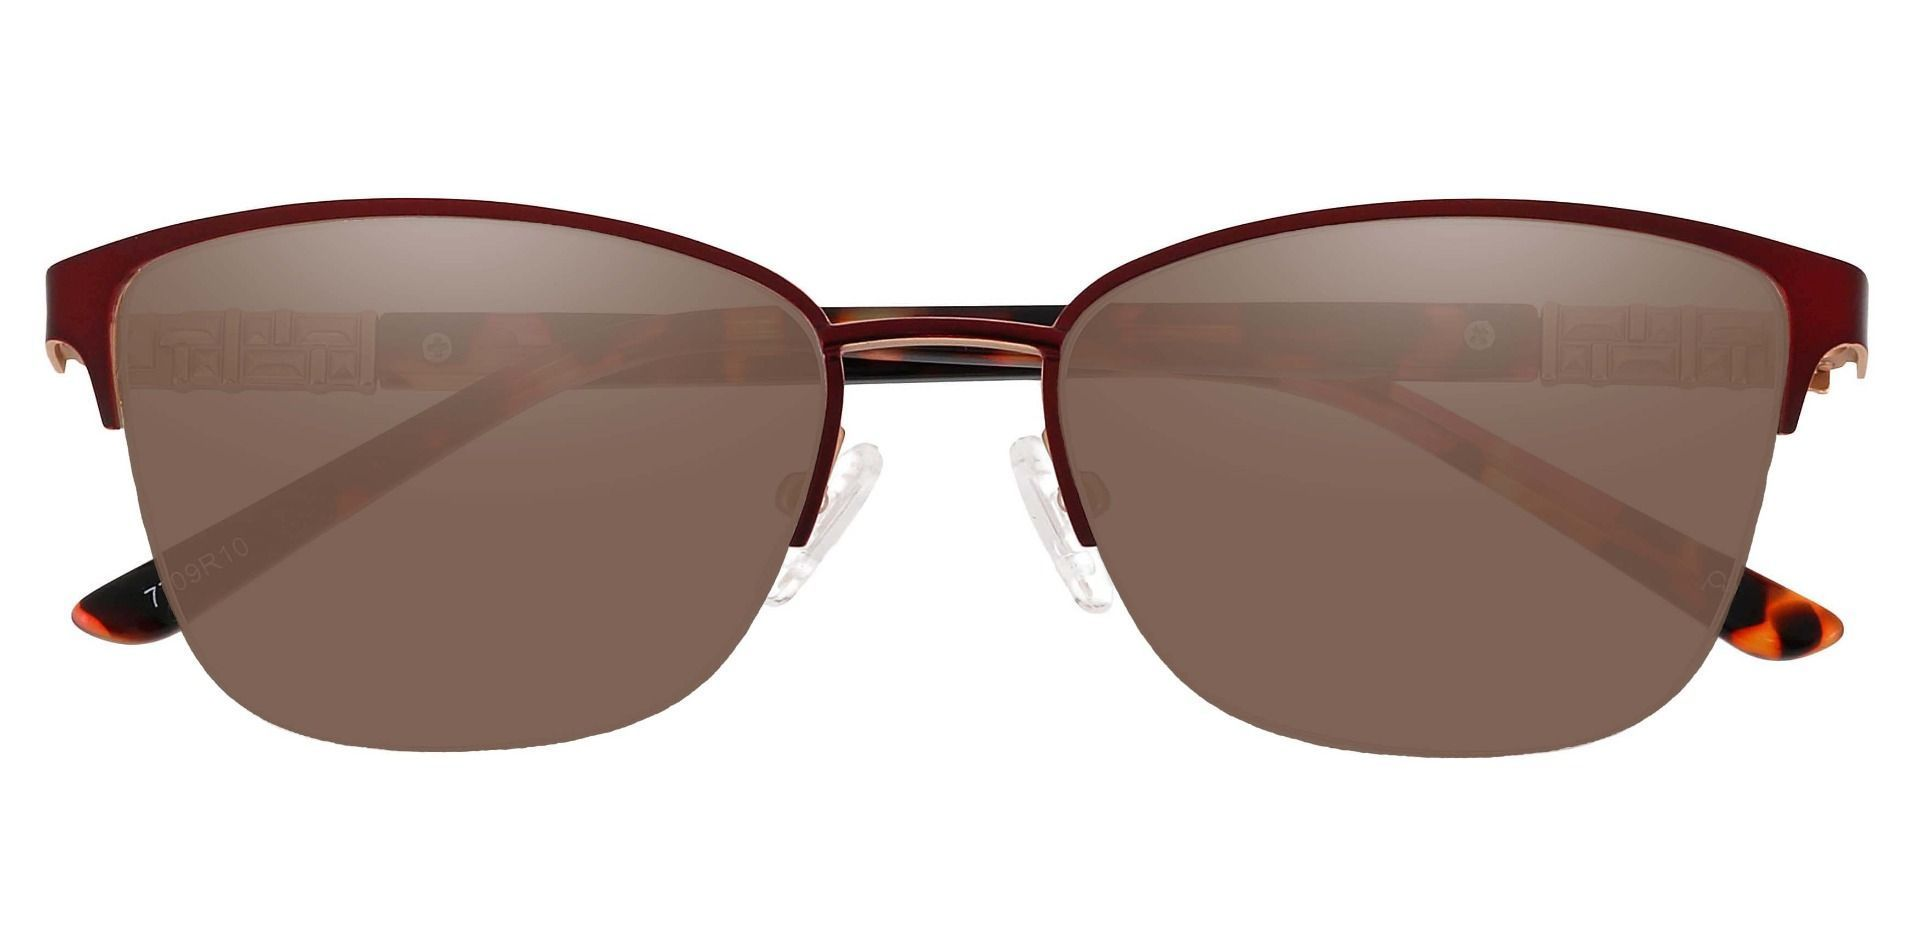 Ballad Cat Eye Lined Bifocal Sunglasses - Red Frame With Brown Lenses